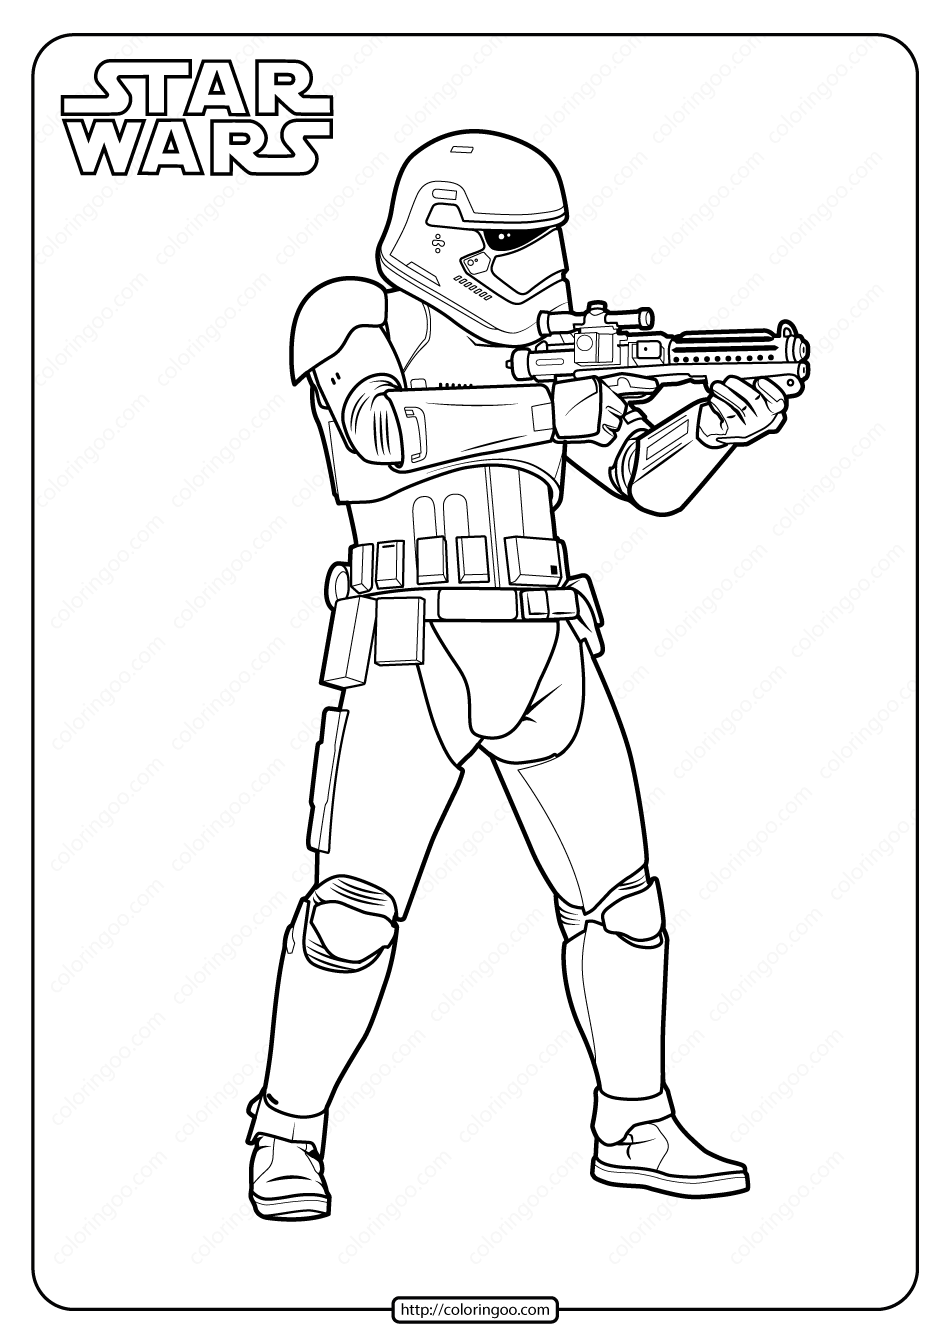 Printable Star Wars Stormtrooper Coloring Page